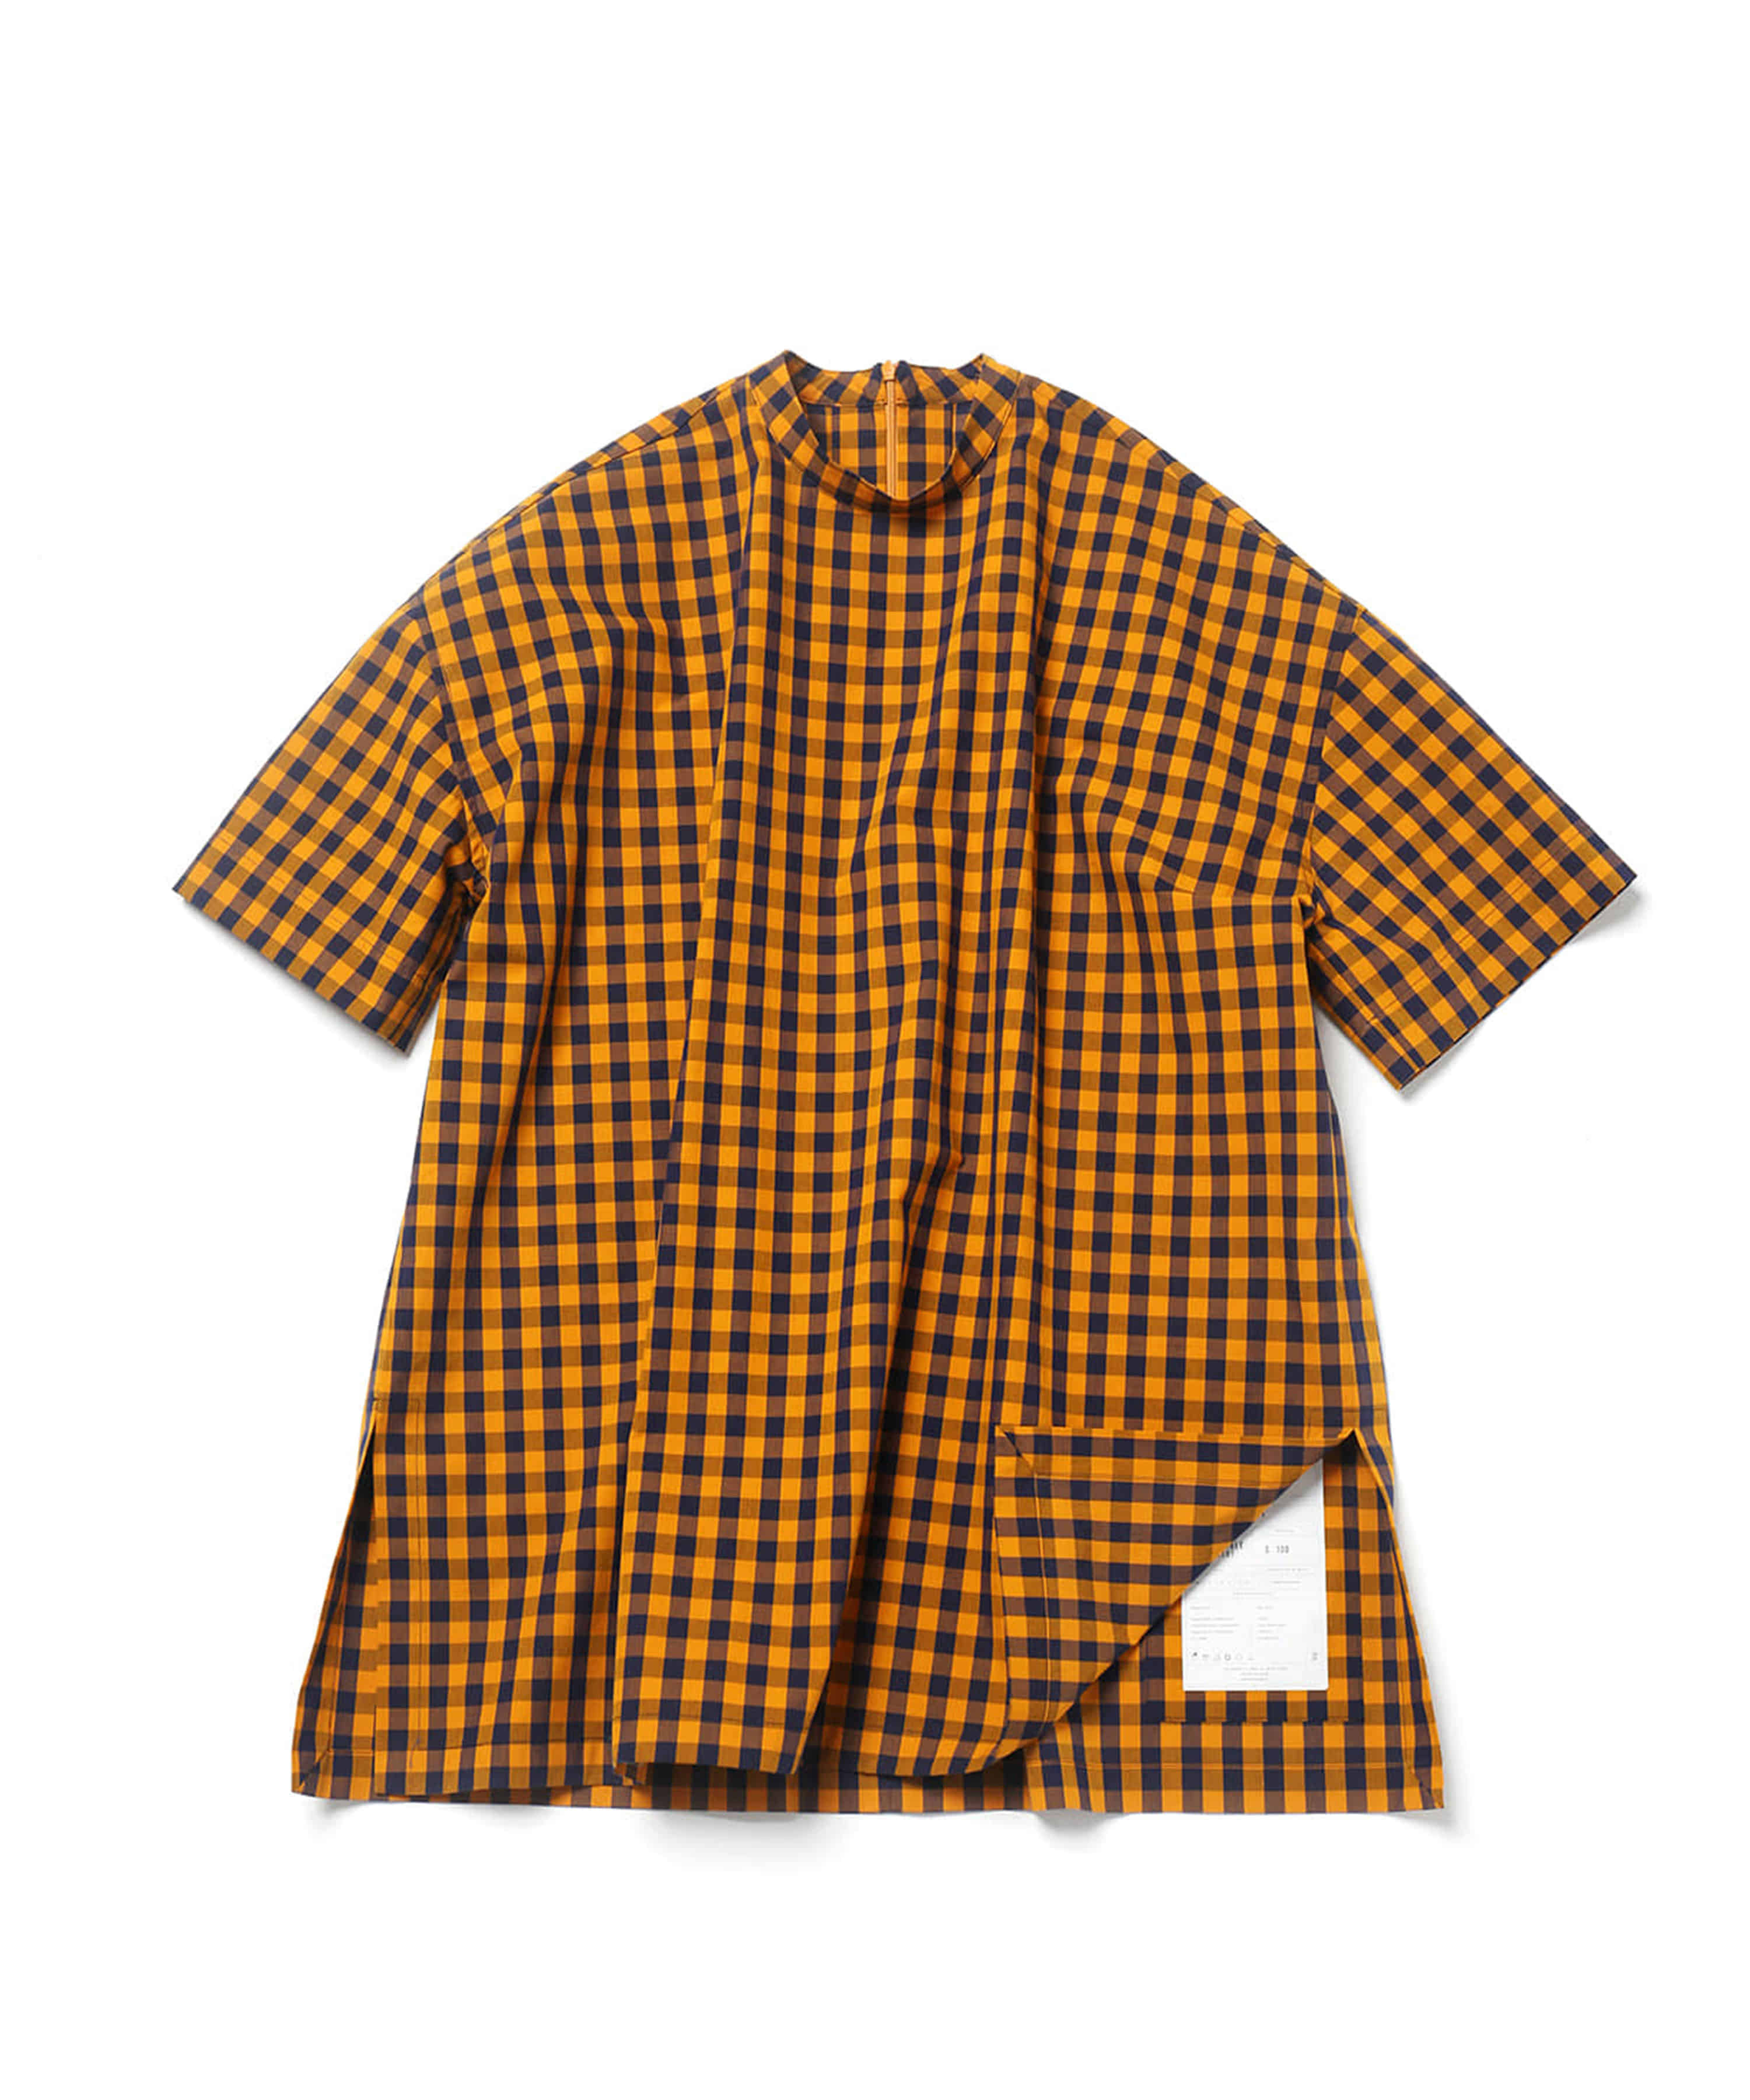 YELLOW BLOCK CHECK COVERABLE TUNIC SHIRTS